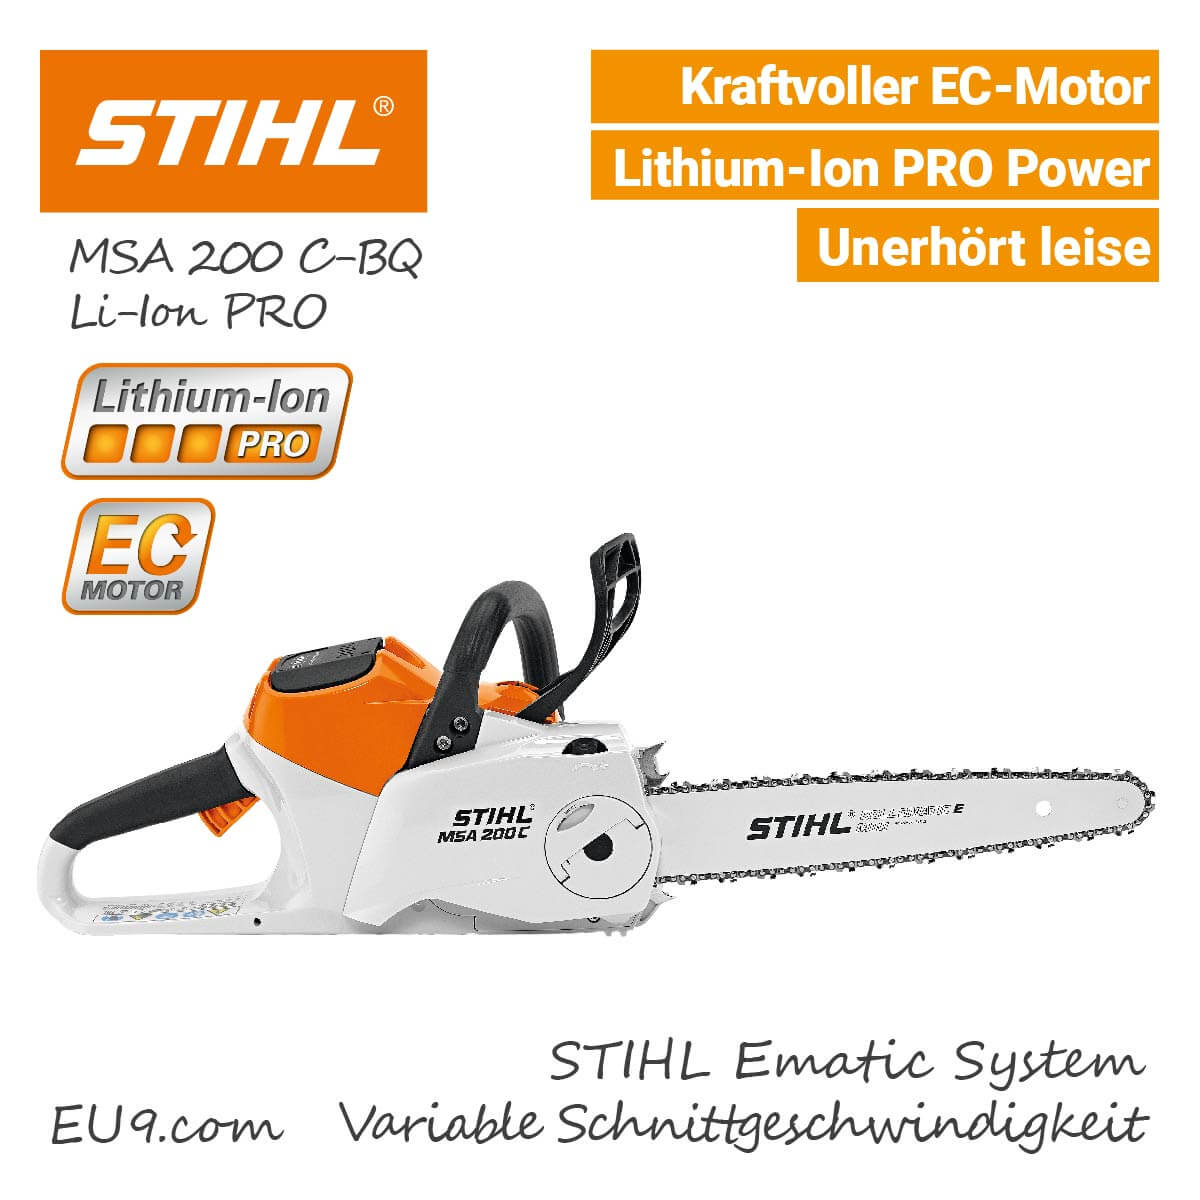 stihl msa 200 c bq kettens ge li ion pro jetzt g nstig kaufen. Black Bedroom Furniture Sets. Home Design Ideas